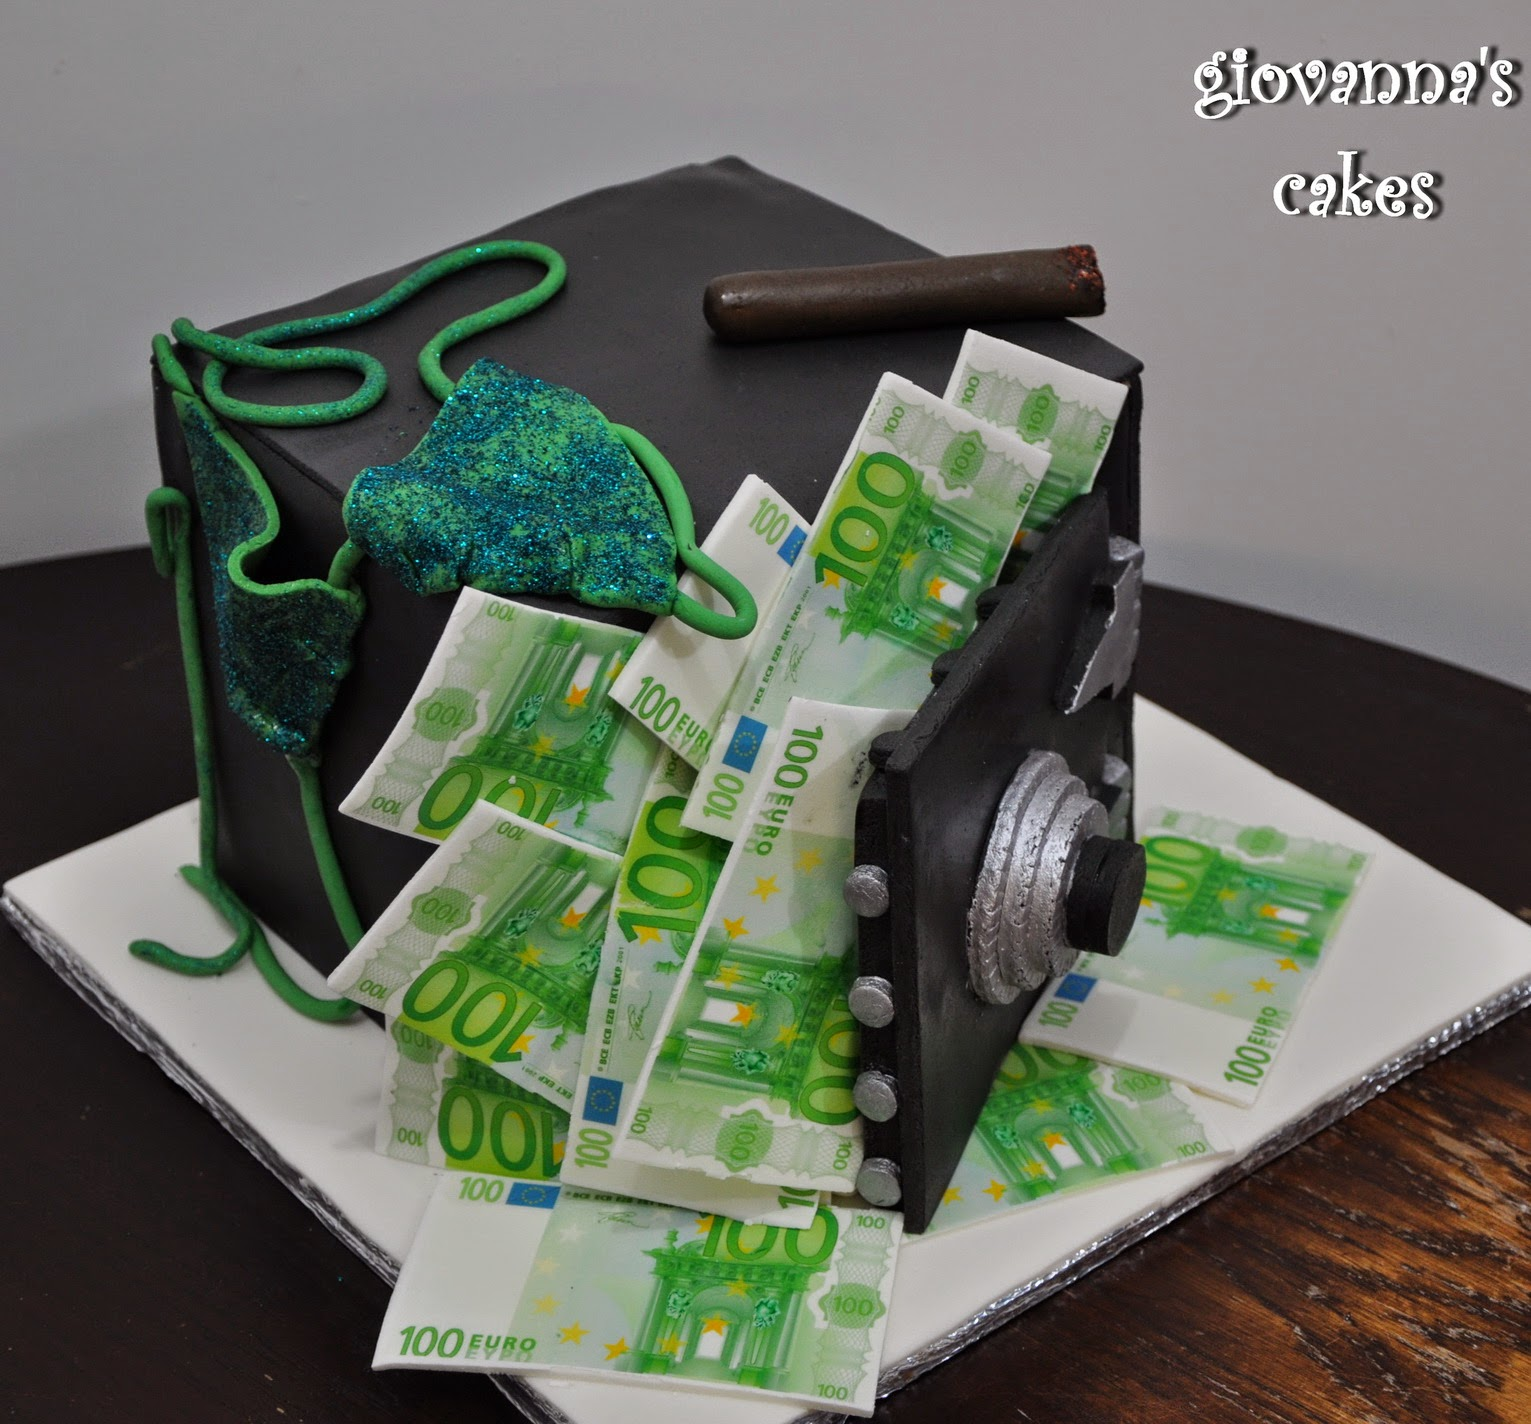 giovannas cakes Money in the seif birthday cake